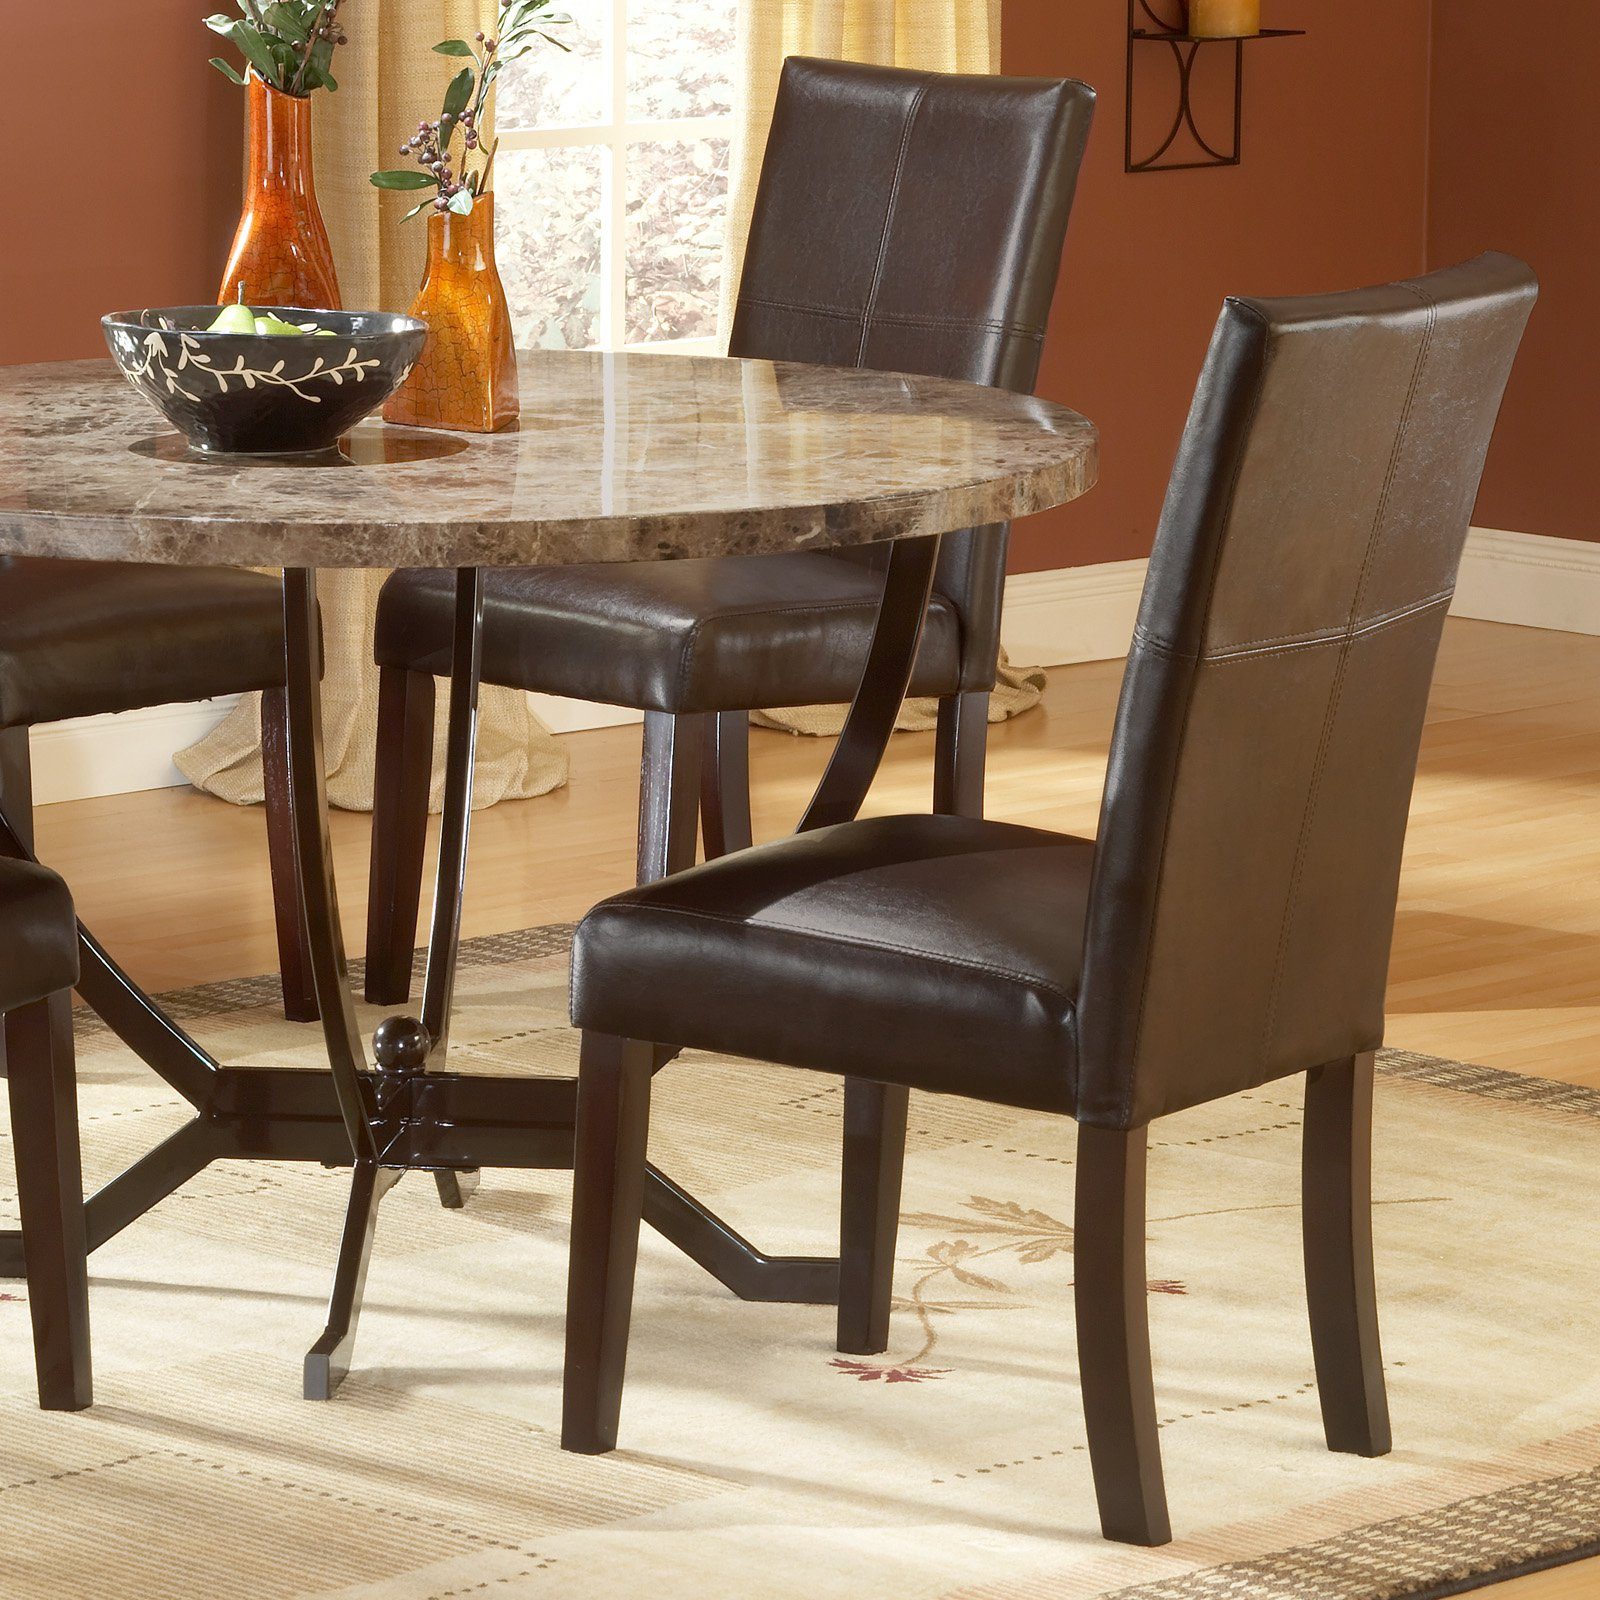 Hillsdale Monaco Parson Dining Chairs   Set Of 2, Espresso